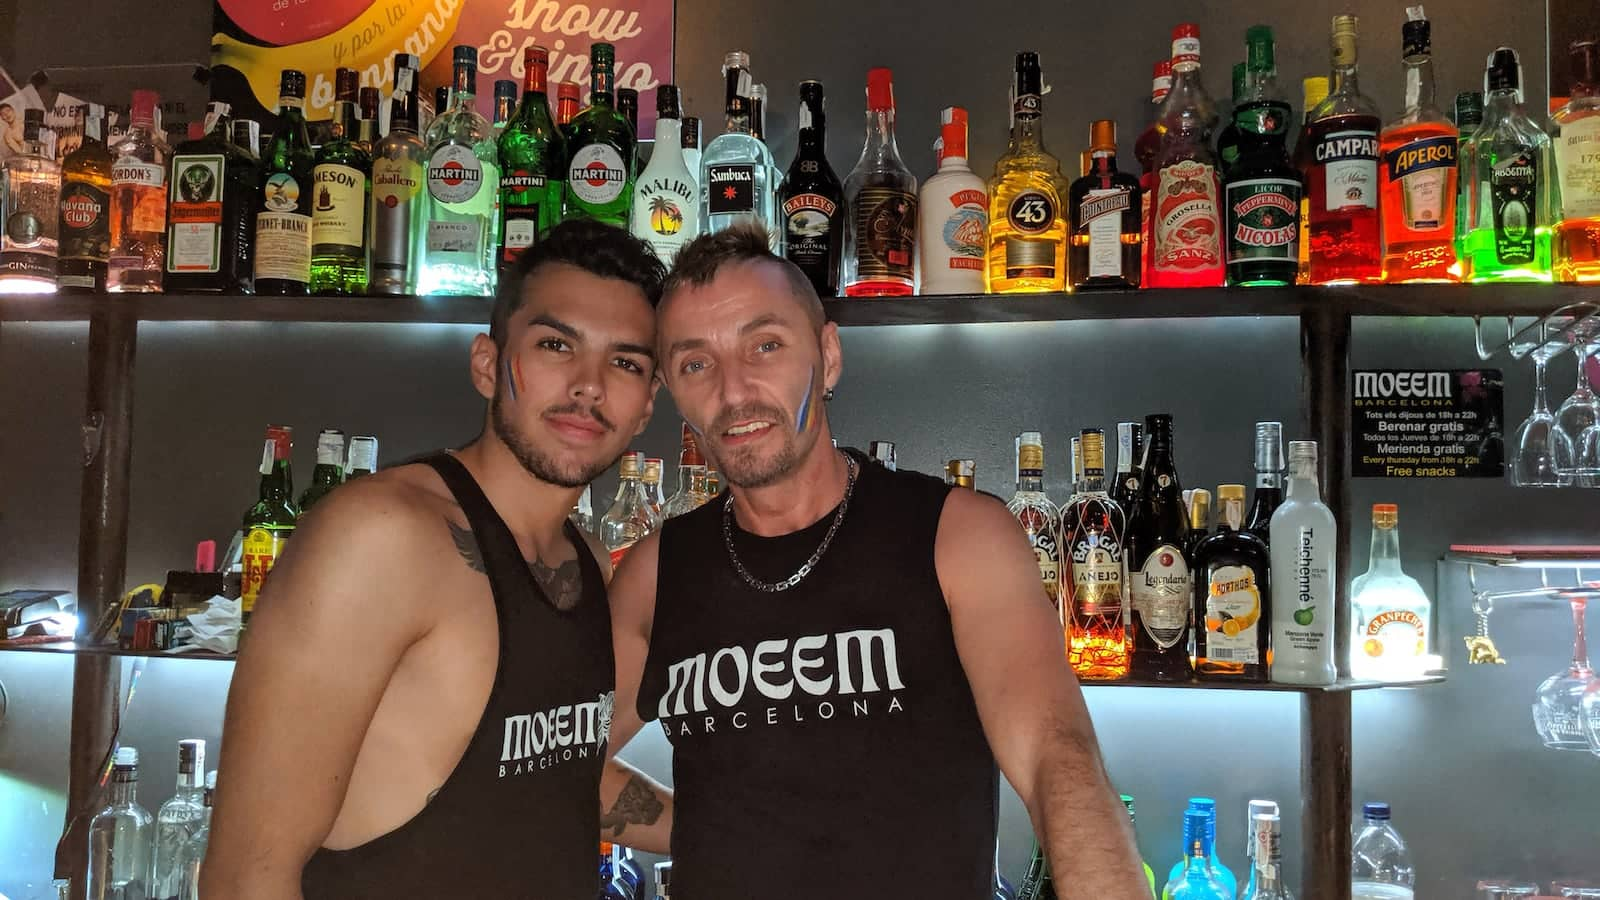 Moeem gay bar Barcelona handsome barmen